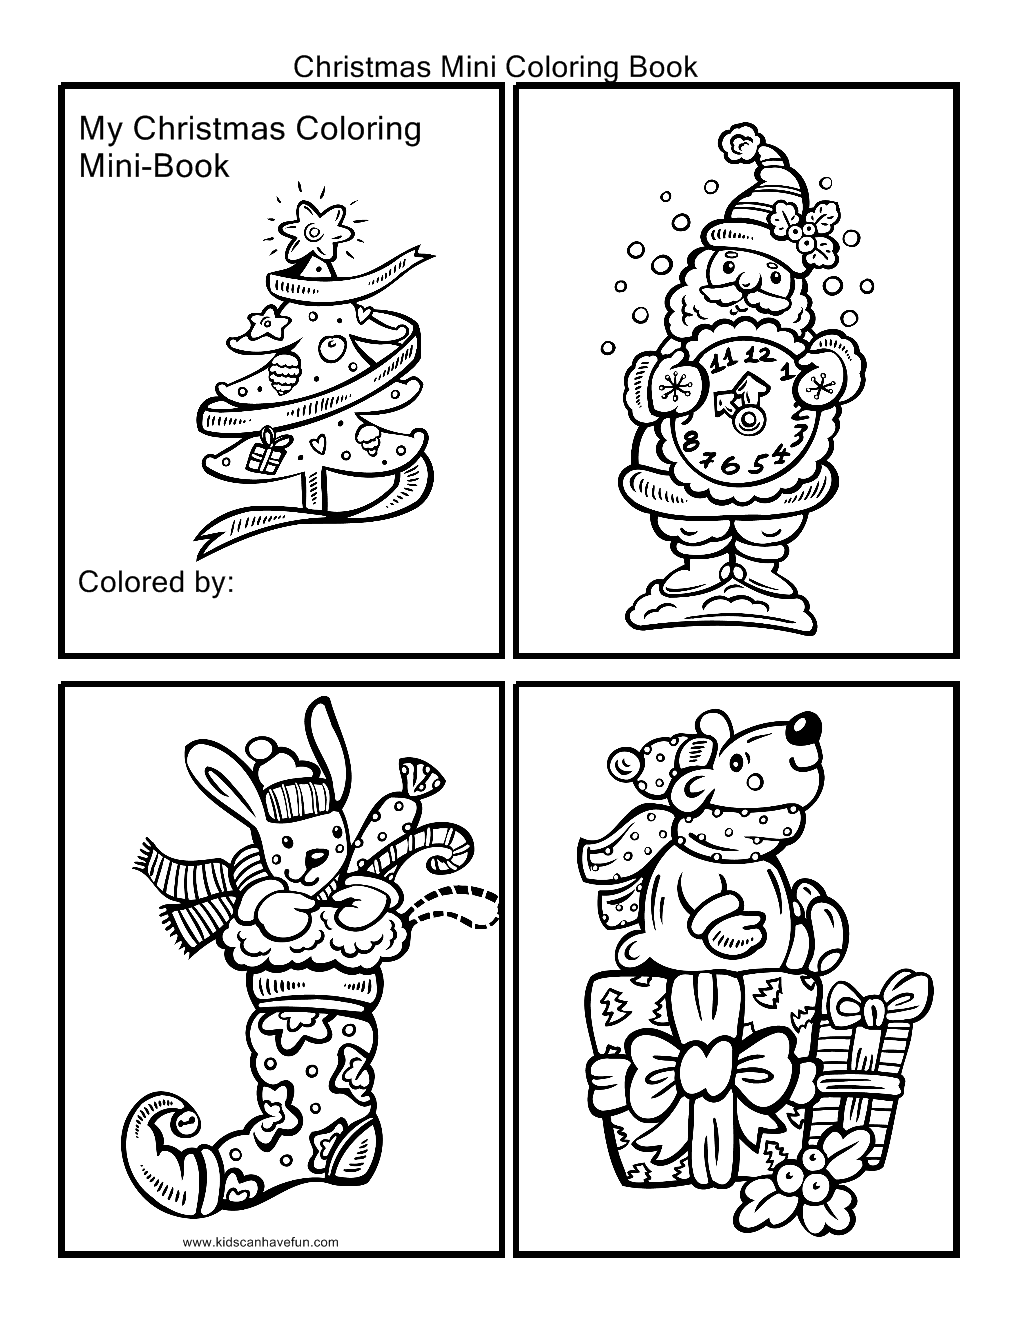 7 Images of Free Printable Mini Coloring Books